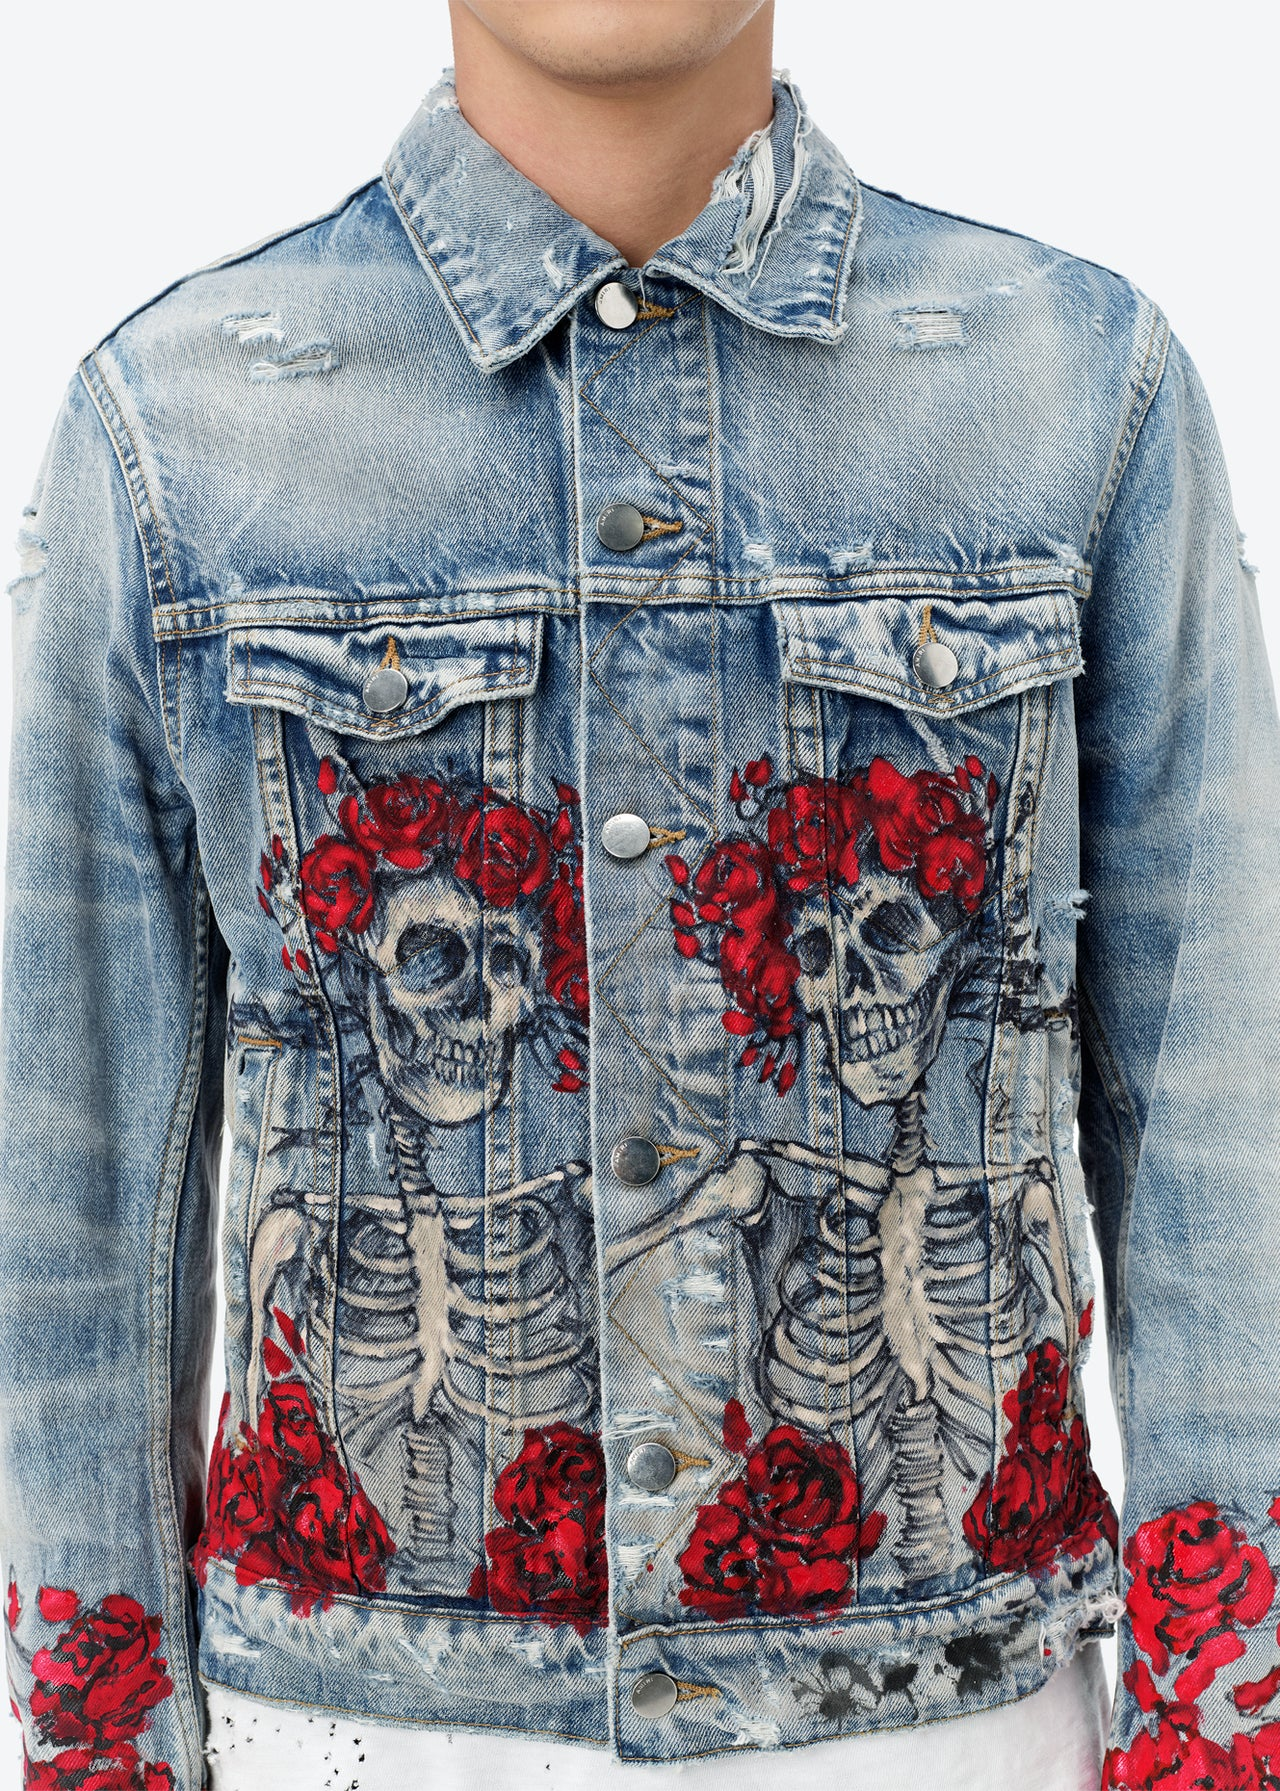 GRATEFUL DEAD TRUCKER JACKET - CLAY INDIGO